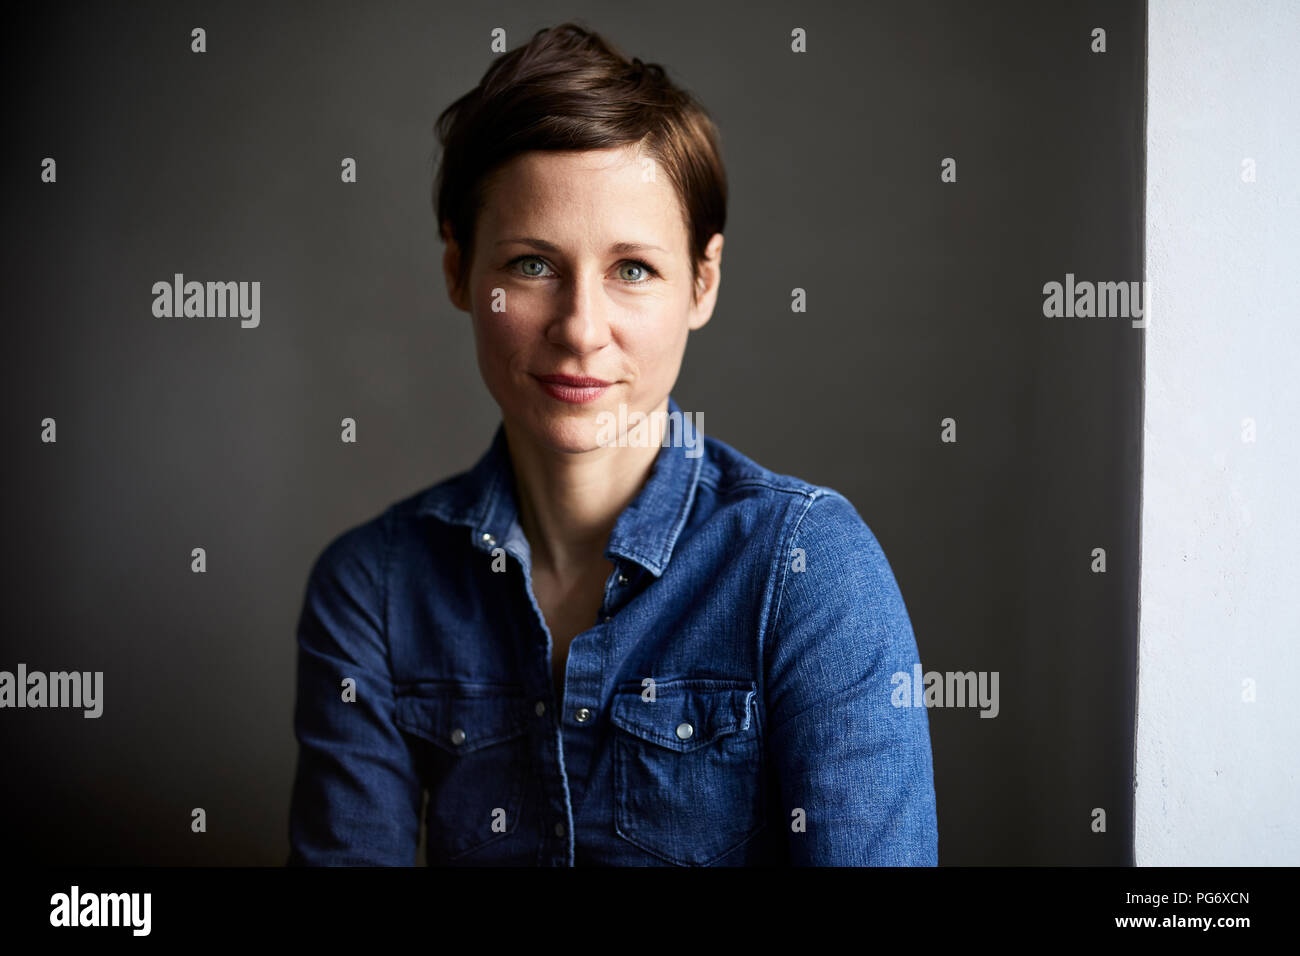 Portrait of ana ttractive woman, wearing denim shirt - Stock Image